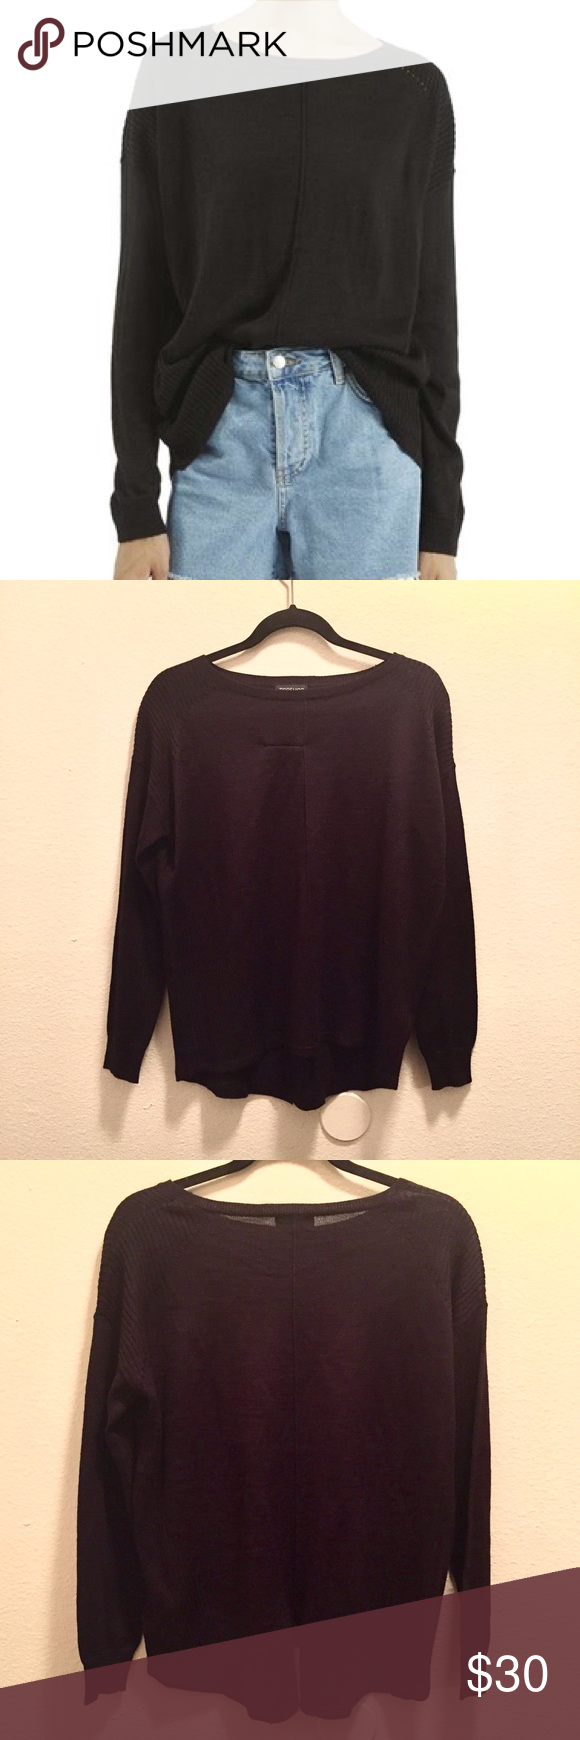 Topshop Black Rib Panel Sweater Tiny eyelets trace the ribbed shoulder panels of a pullover sweater knit from a fine yarn blend. The oversized fit makes it perfect to wear with leggings or tuck into pants for an effortlessly chic look. Marked as EUR 36, US 4, UK 8. Fits like a US S-M. NWOT. Topshop Sweaters Crew & Scoop Necks